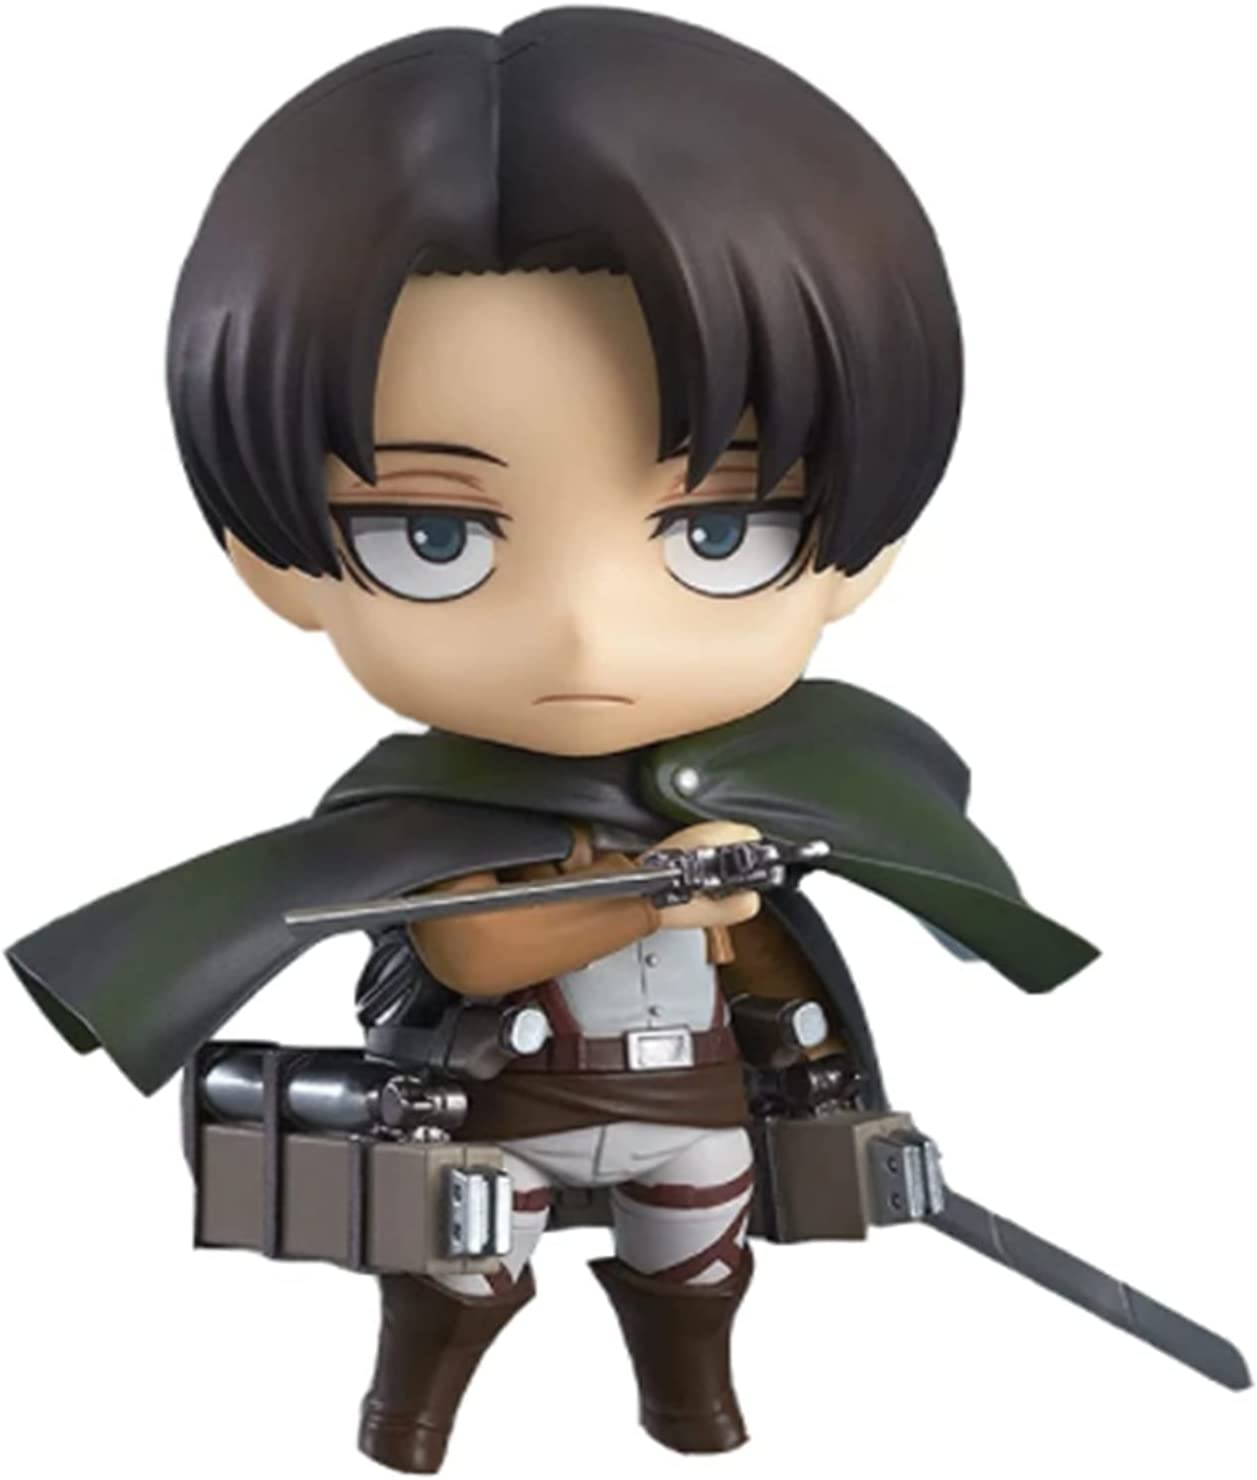 YZYN-BJ Max Special price 61% OFF Anime Action Figure Toy Interesting Toys Cute PVC Model